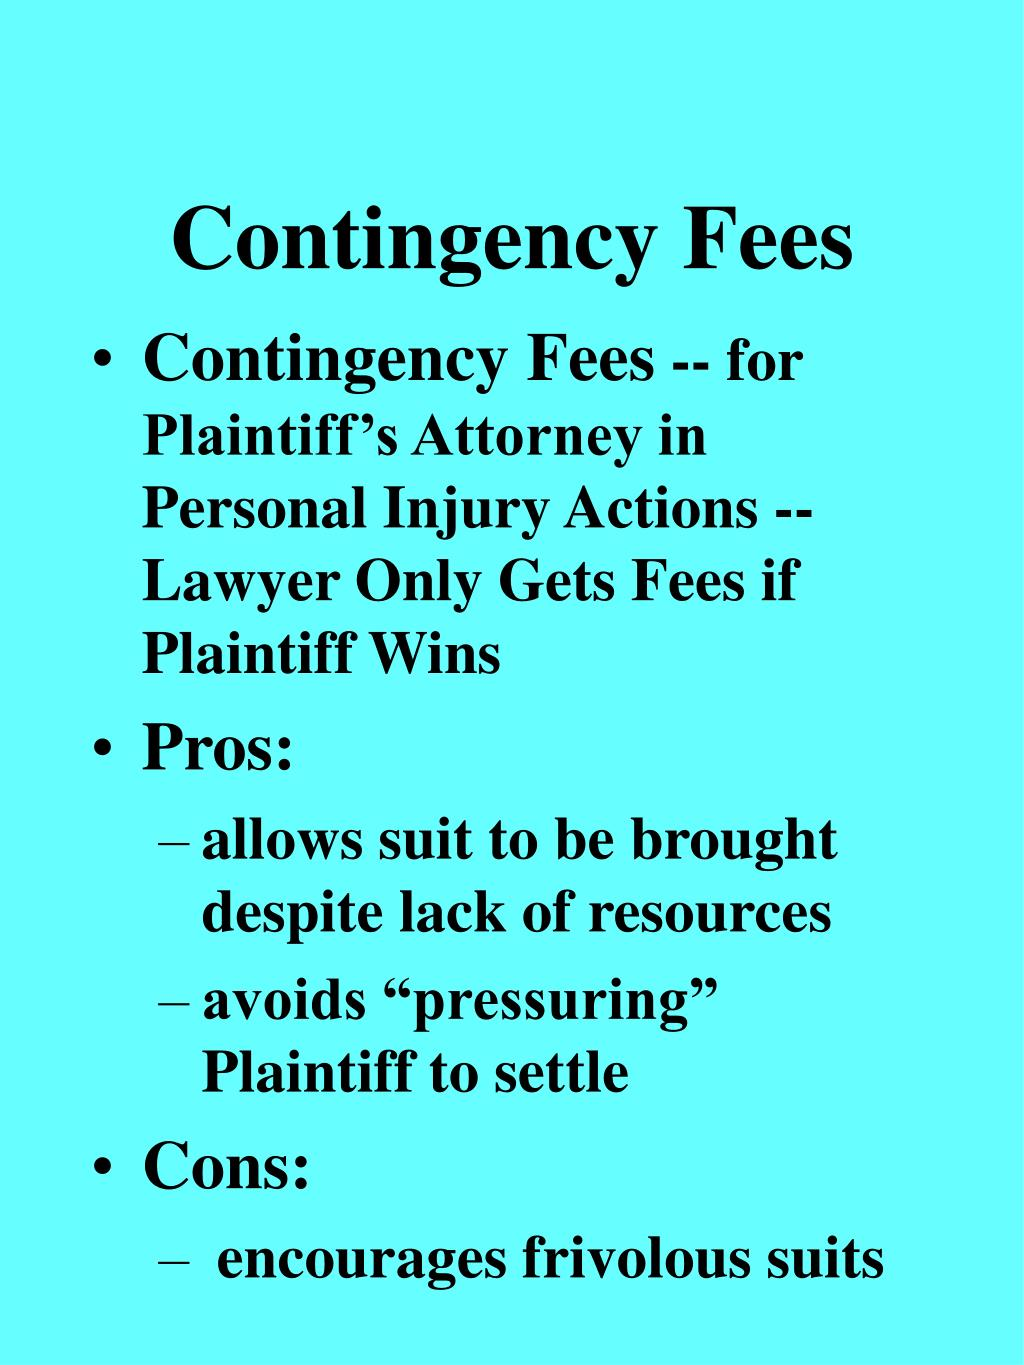 Contingency Fees